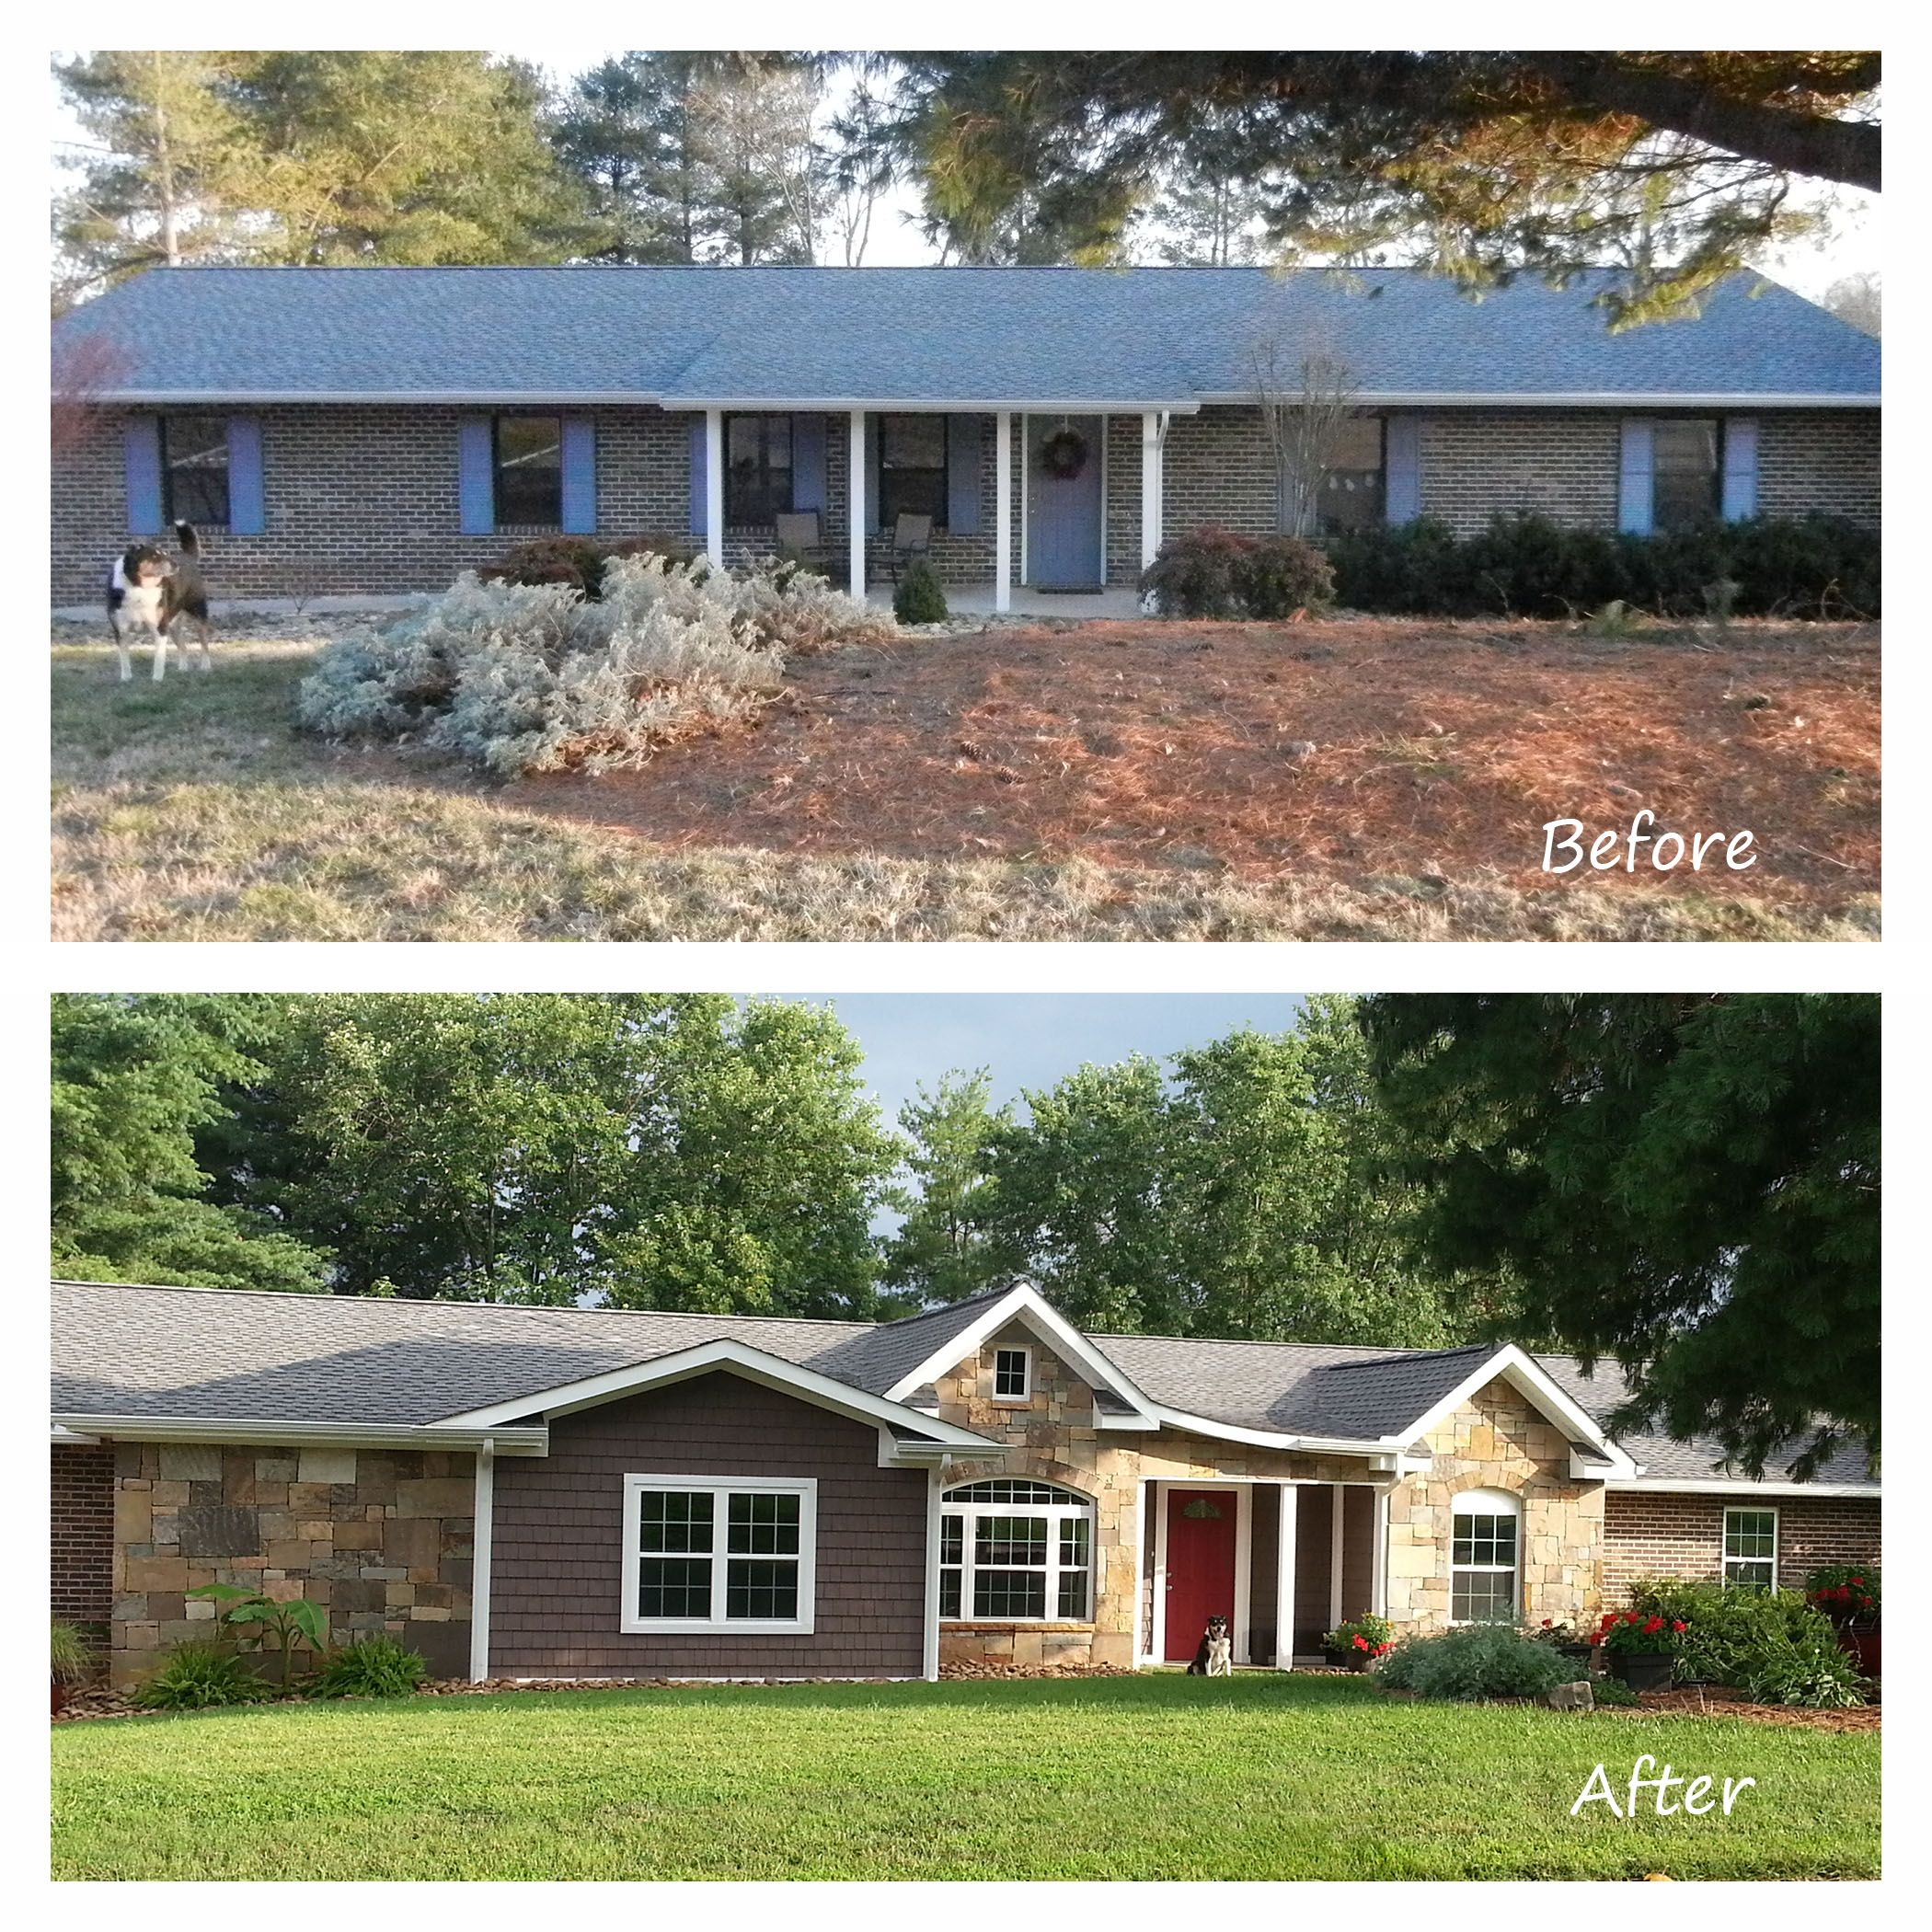 Before and after exterior renovation ranch house remodel for Redesign front of house